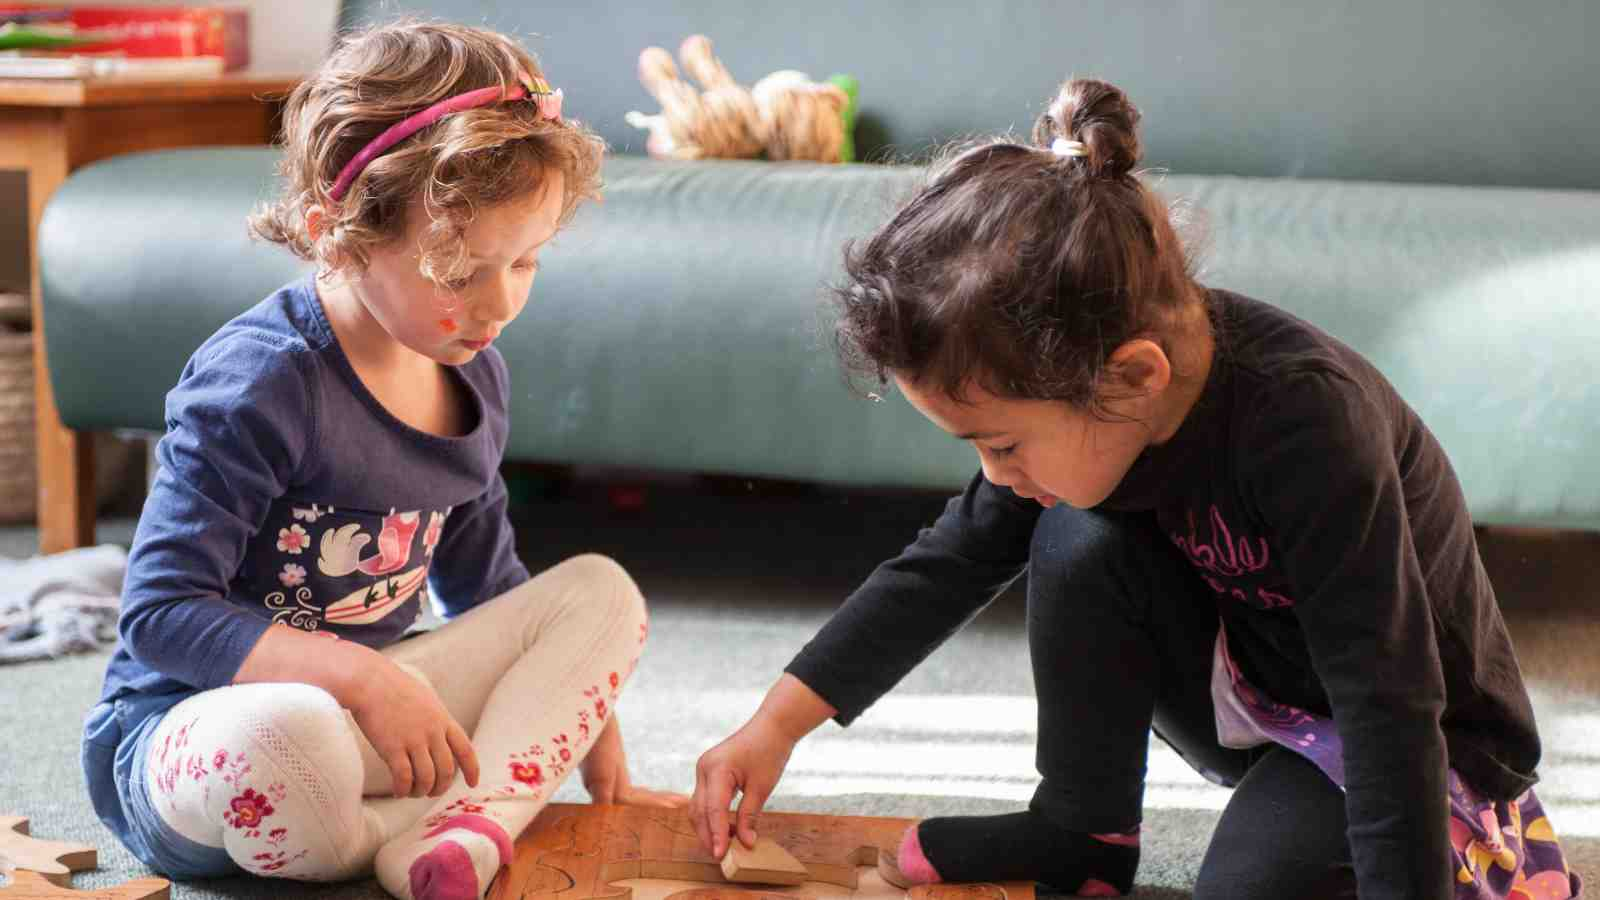 20 Hours Eerly Childhood Education – Two young girls play with a wooden puzzle together.